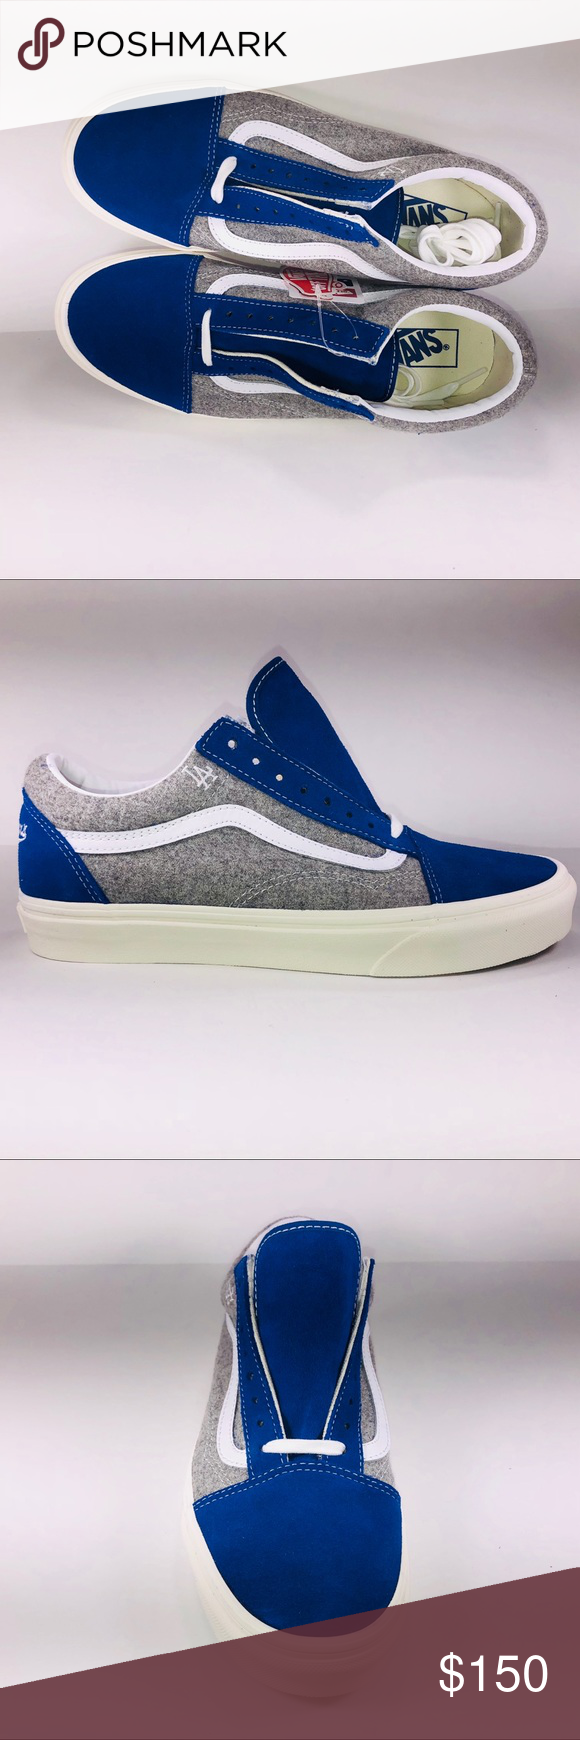 VANS Old Skool MLB Wool Pack LA Dodgers Blue Shoes New With Damaged Box See  Pictures 6a411f779